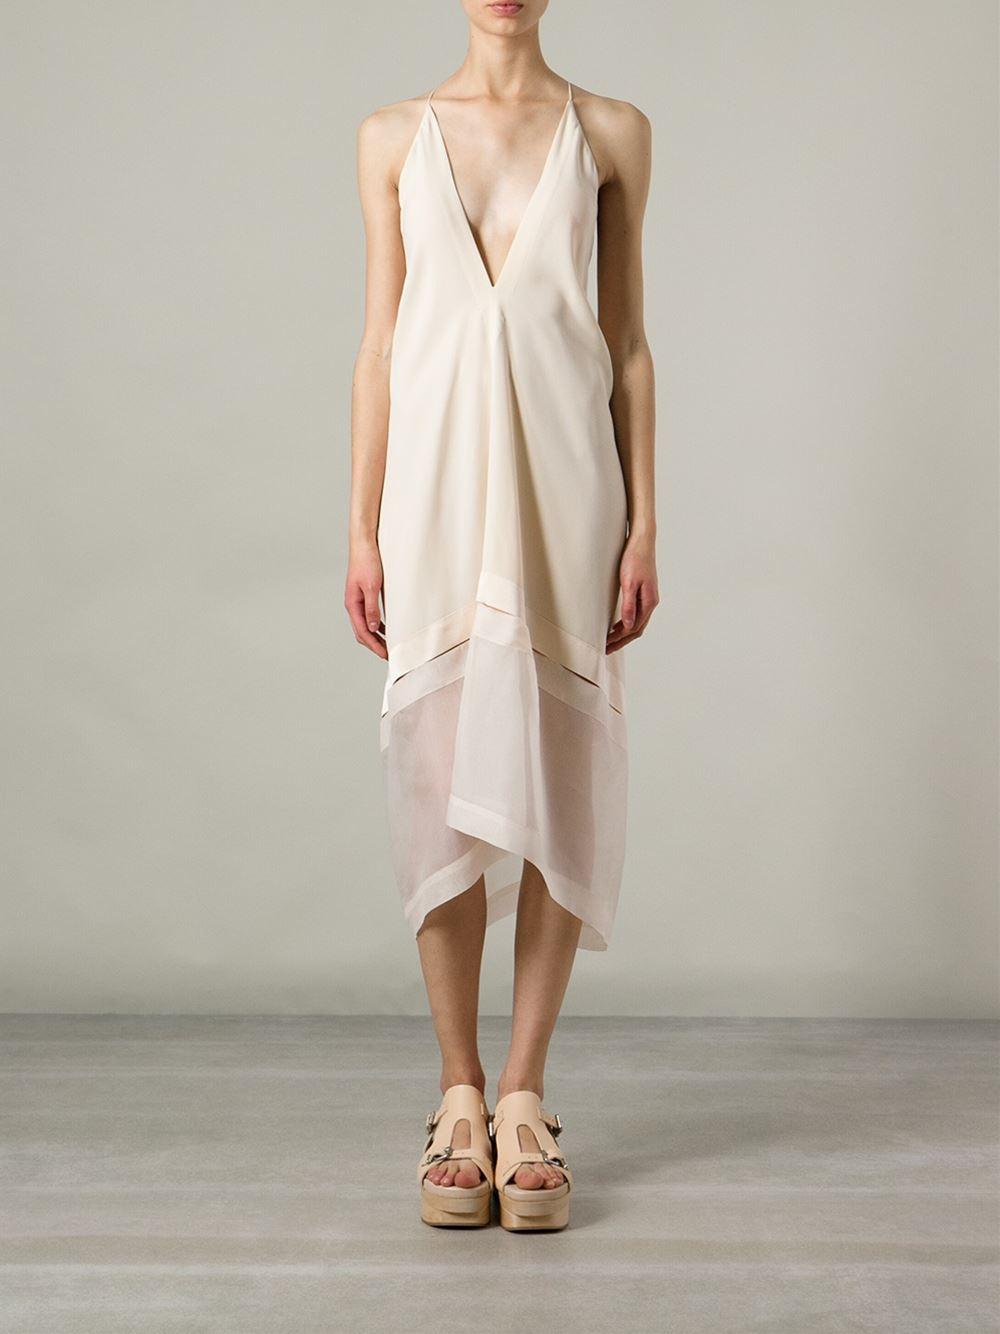 Stella Mccartney Plunge Neck Dress - Mcmarket Monaco - Farfetch.com